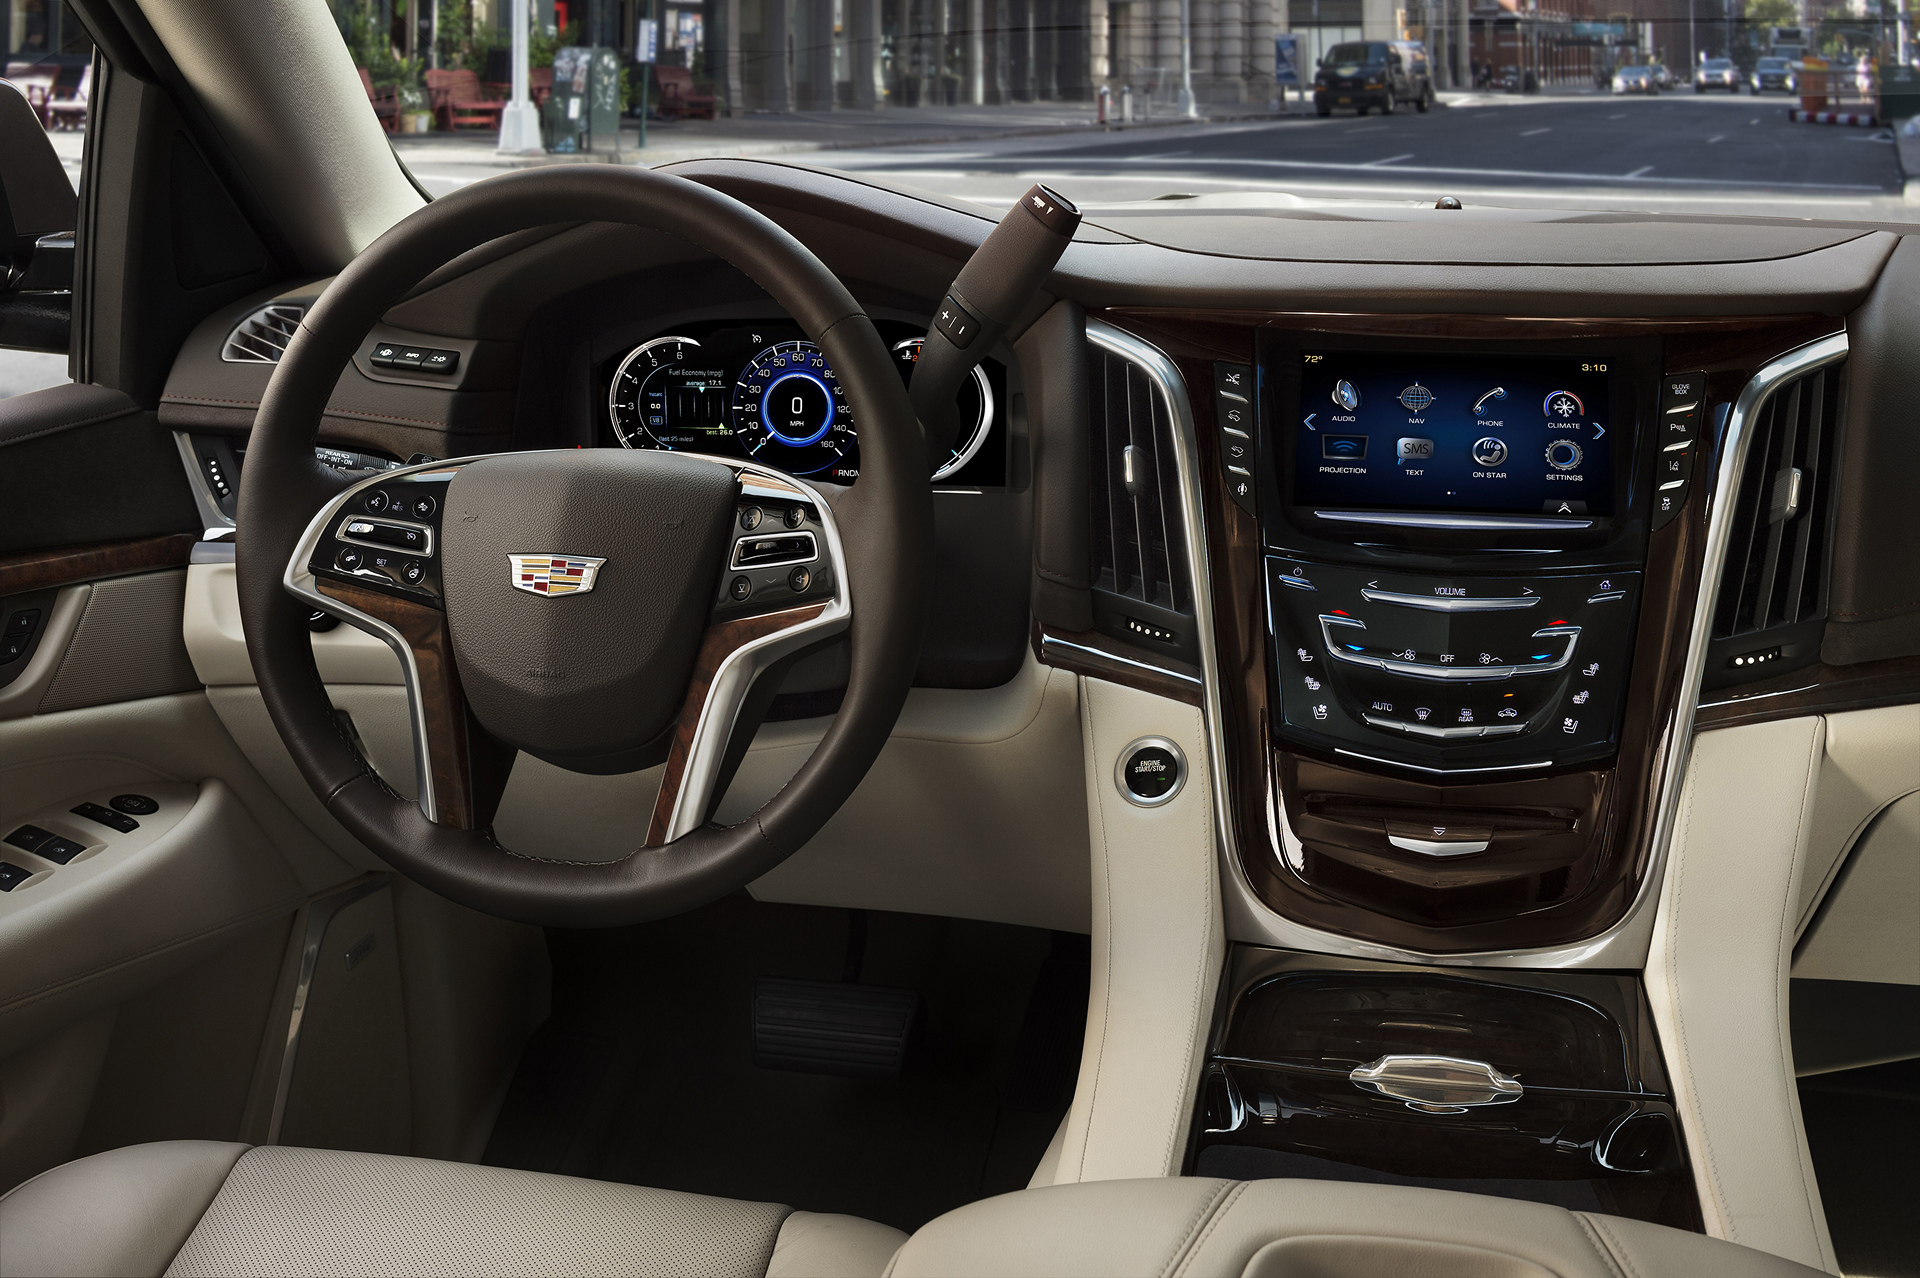 2017 Cadillac Escalade © General Motors